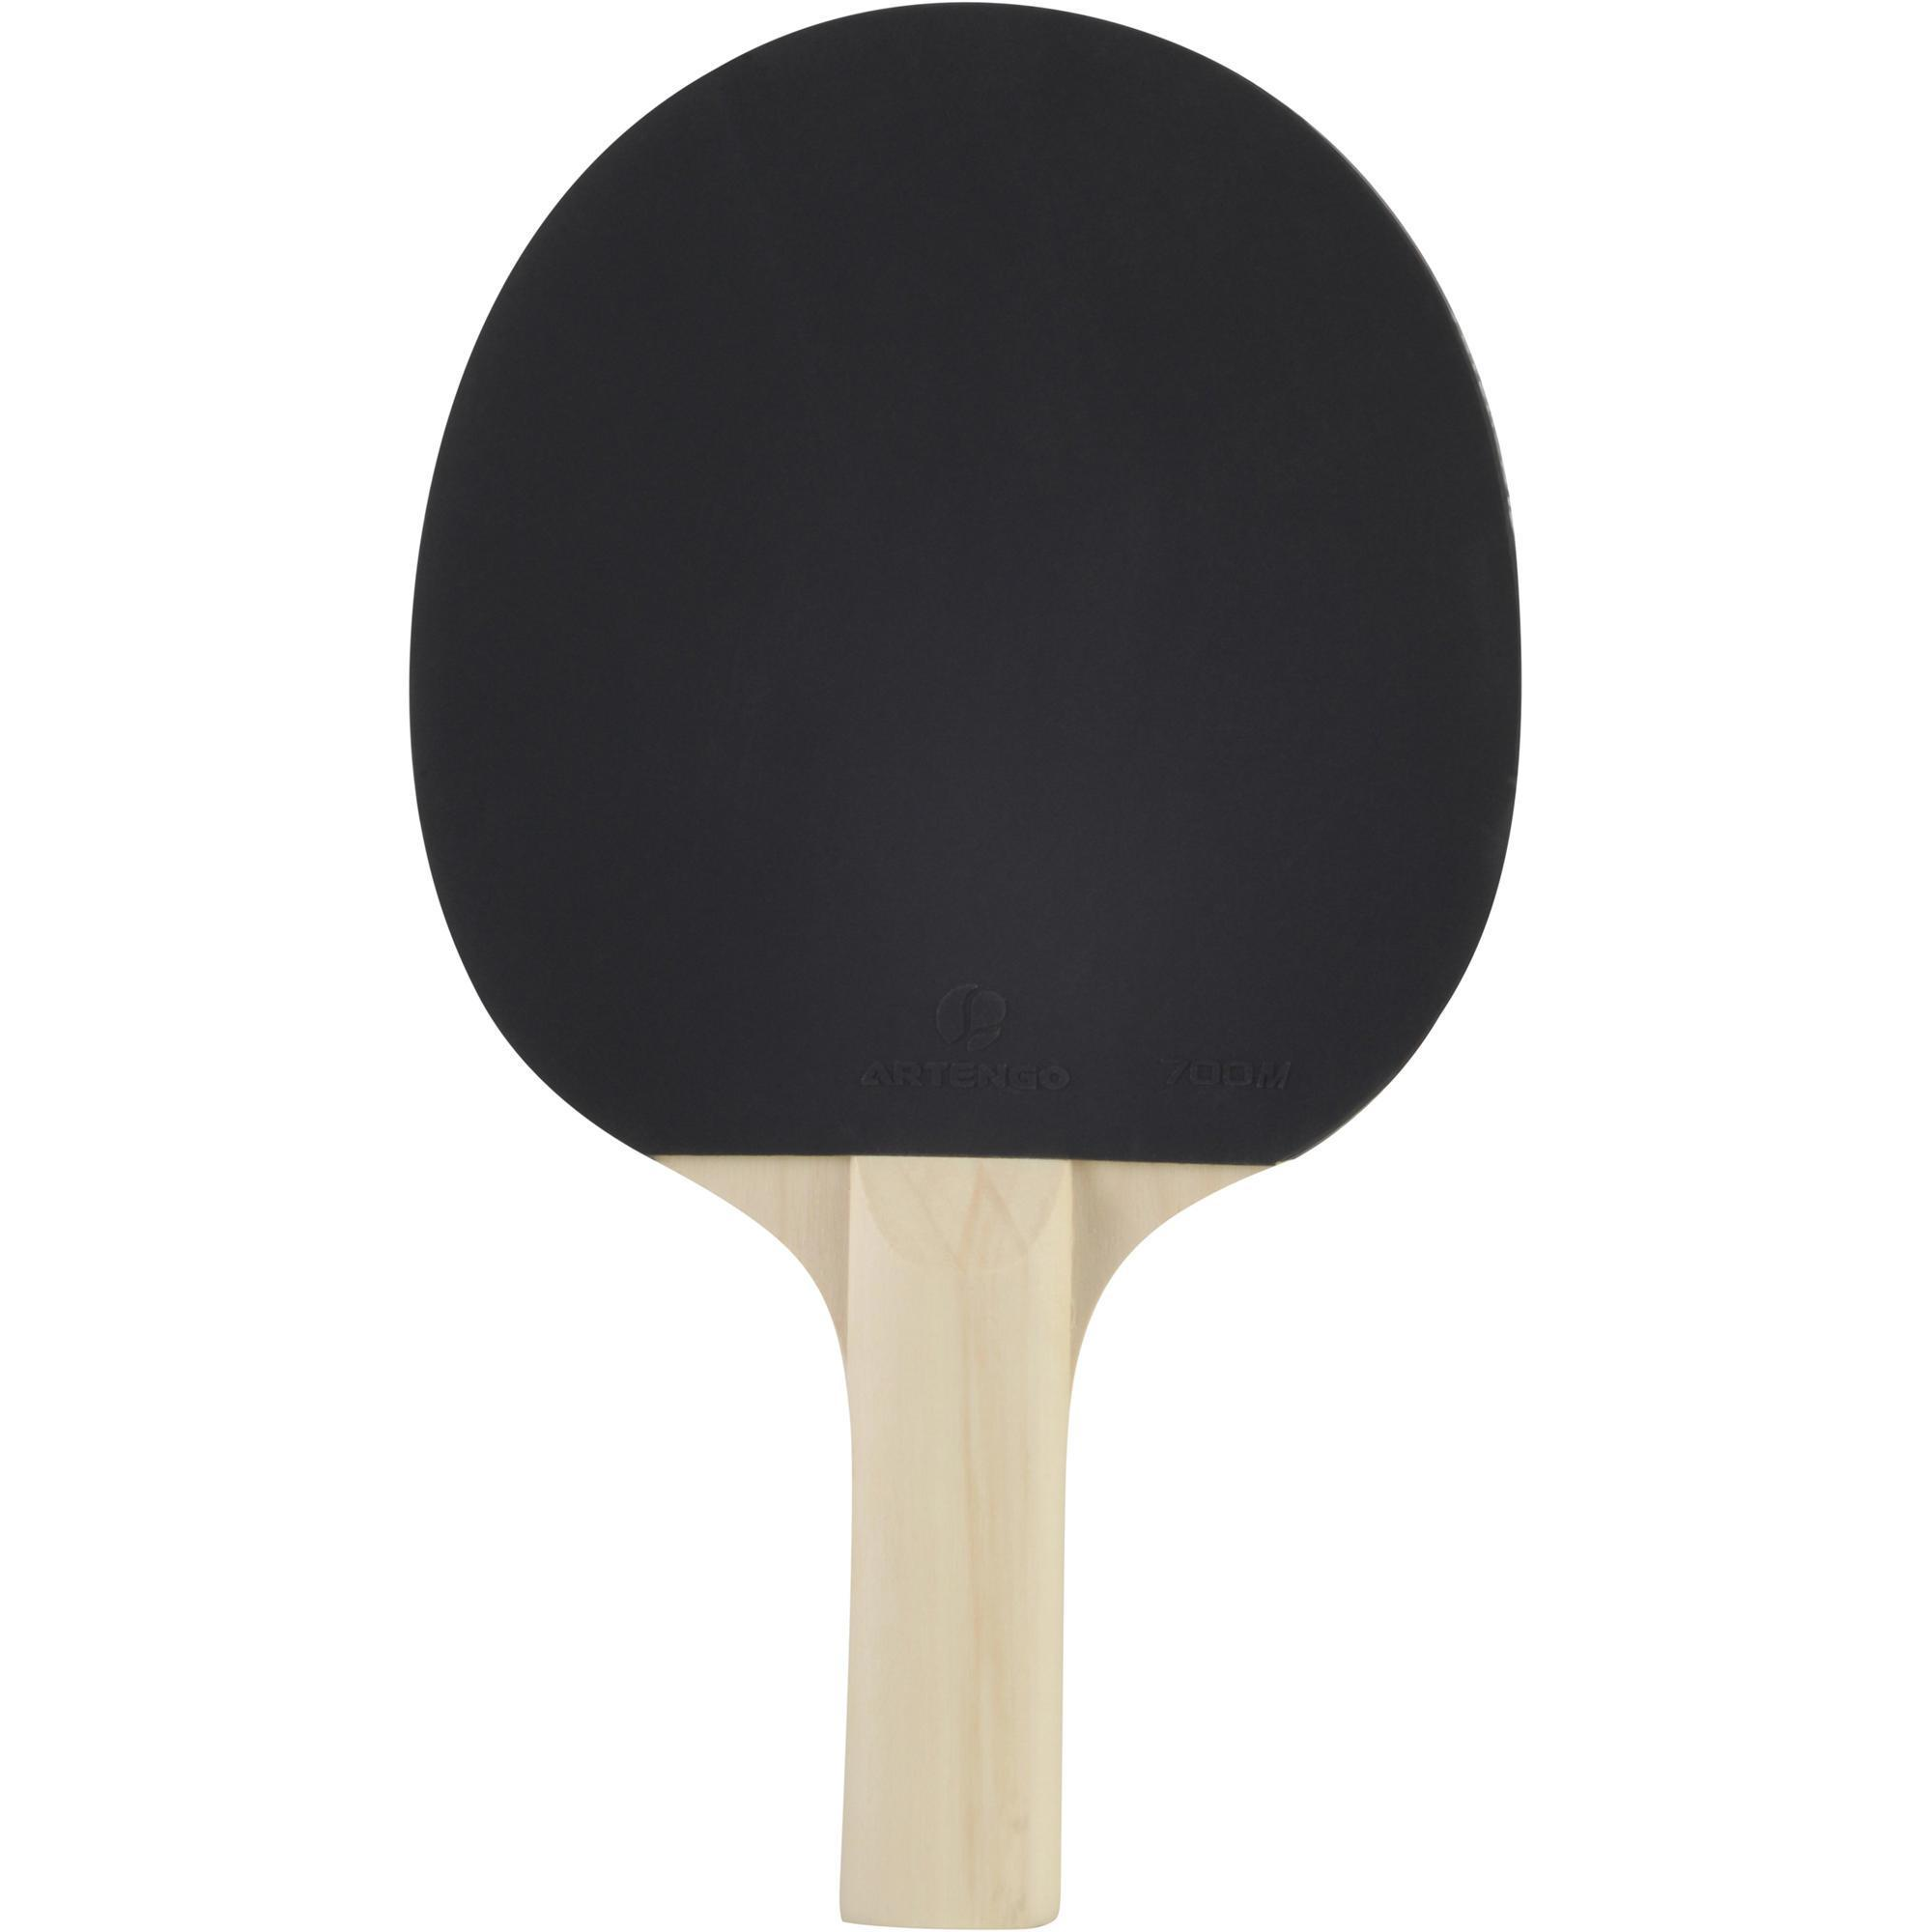 raquette ping pong fr 700 tennis de table artengo. Black Bedroom Furniture Sets. Home Design Ideas